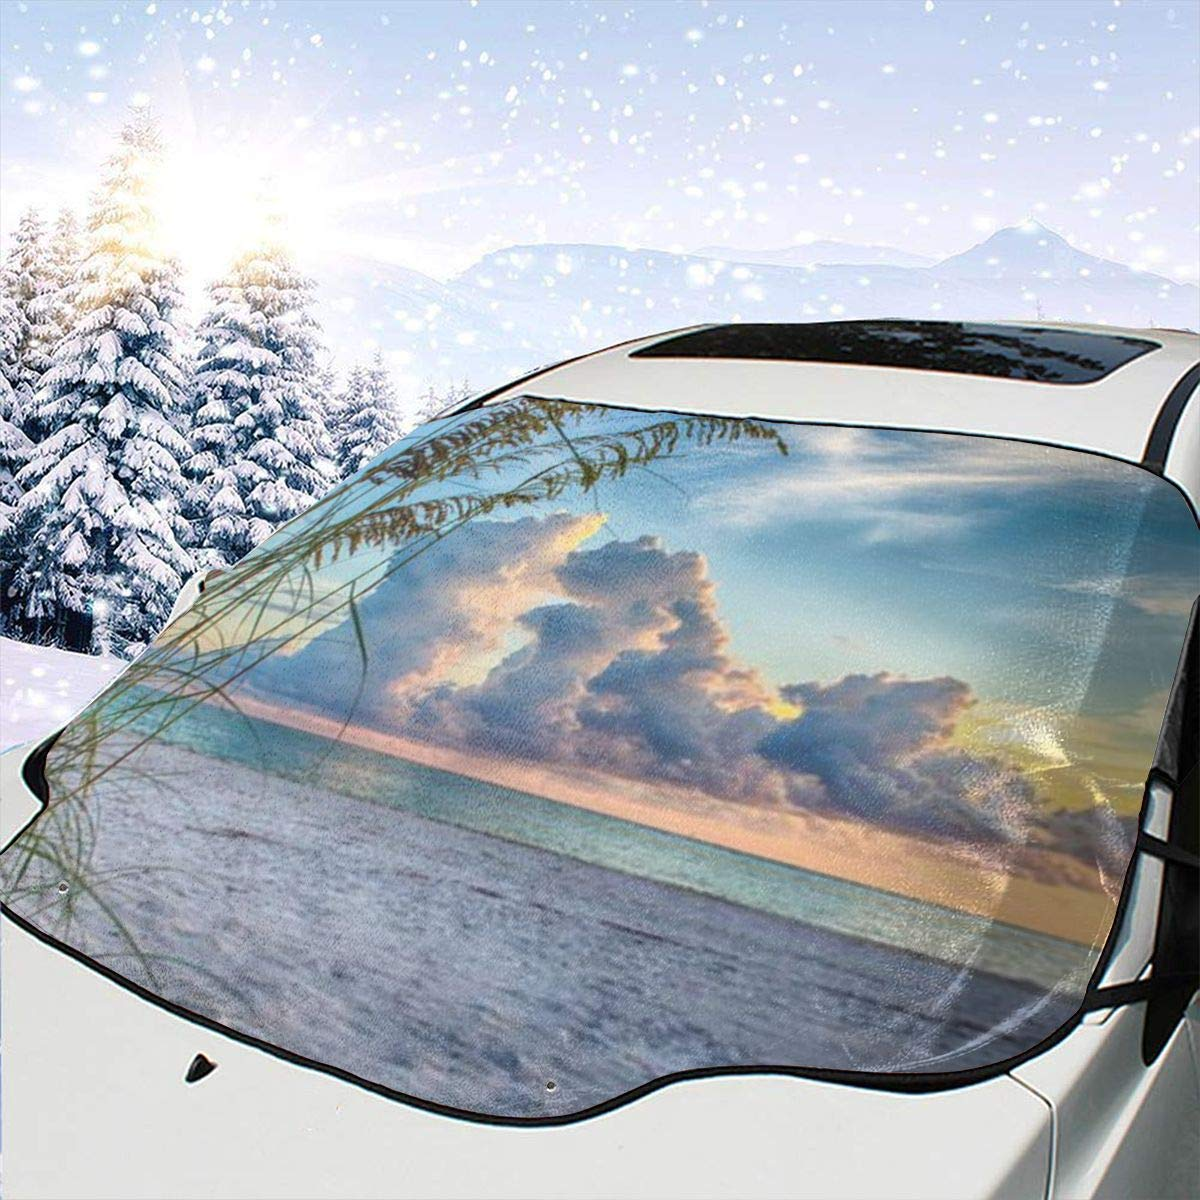 Coud Car Windshield Now 25% OFF on sale Sun Shade Sunshade-Keep Coo Vehicle Your